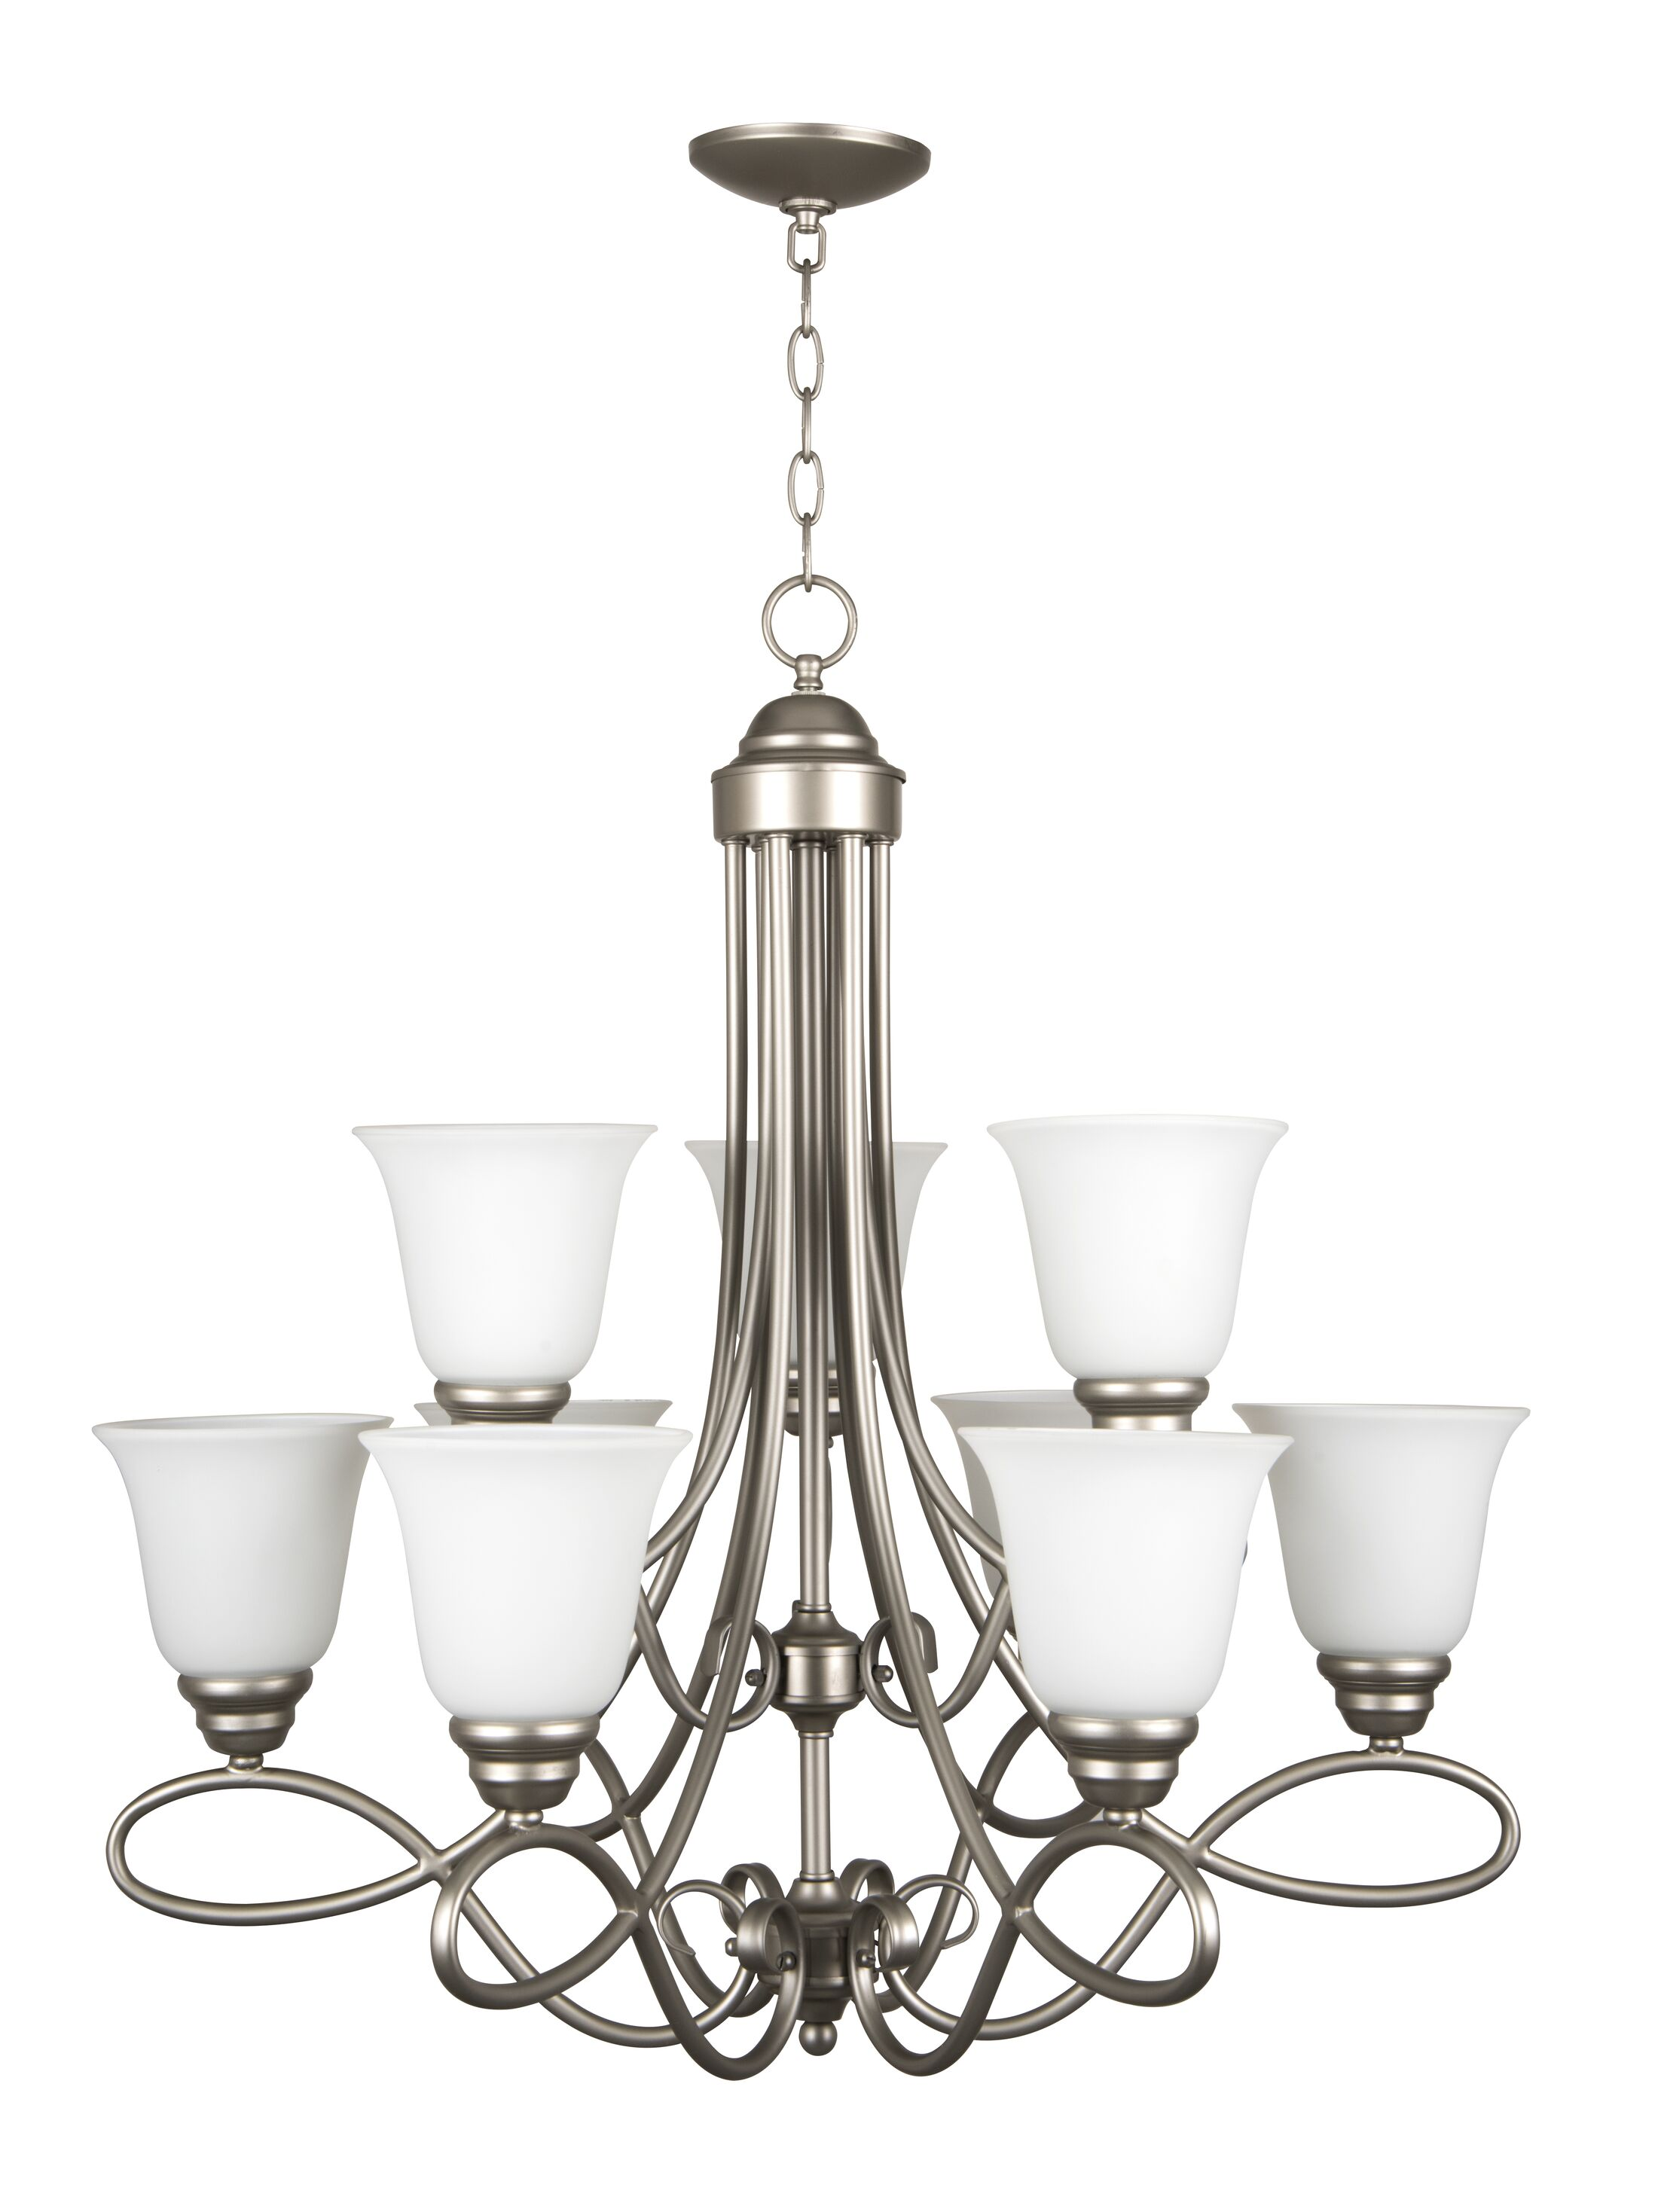 Ellis 9-Light Shaded Chandelier Finish: Satin Nickel with White Frosted Glass